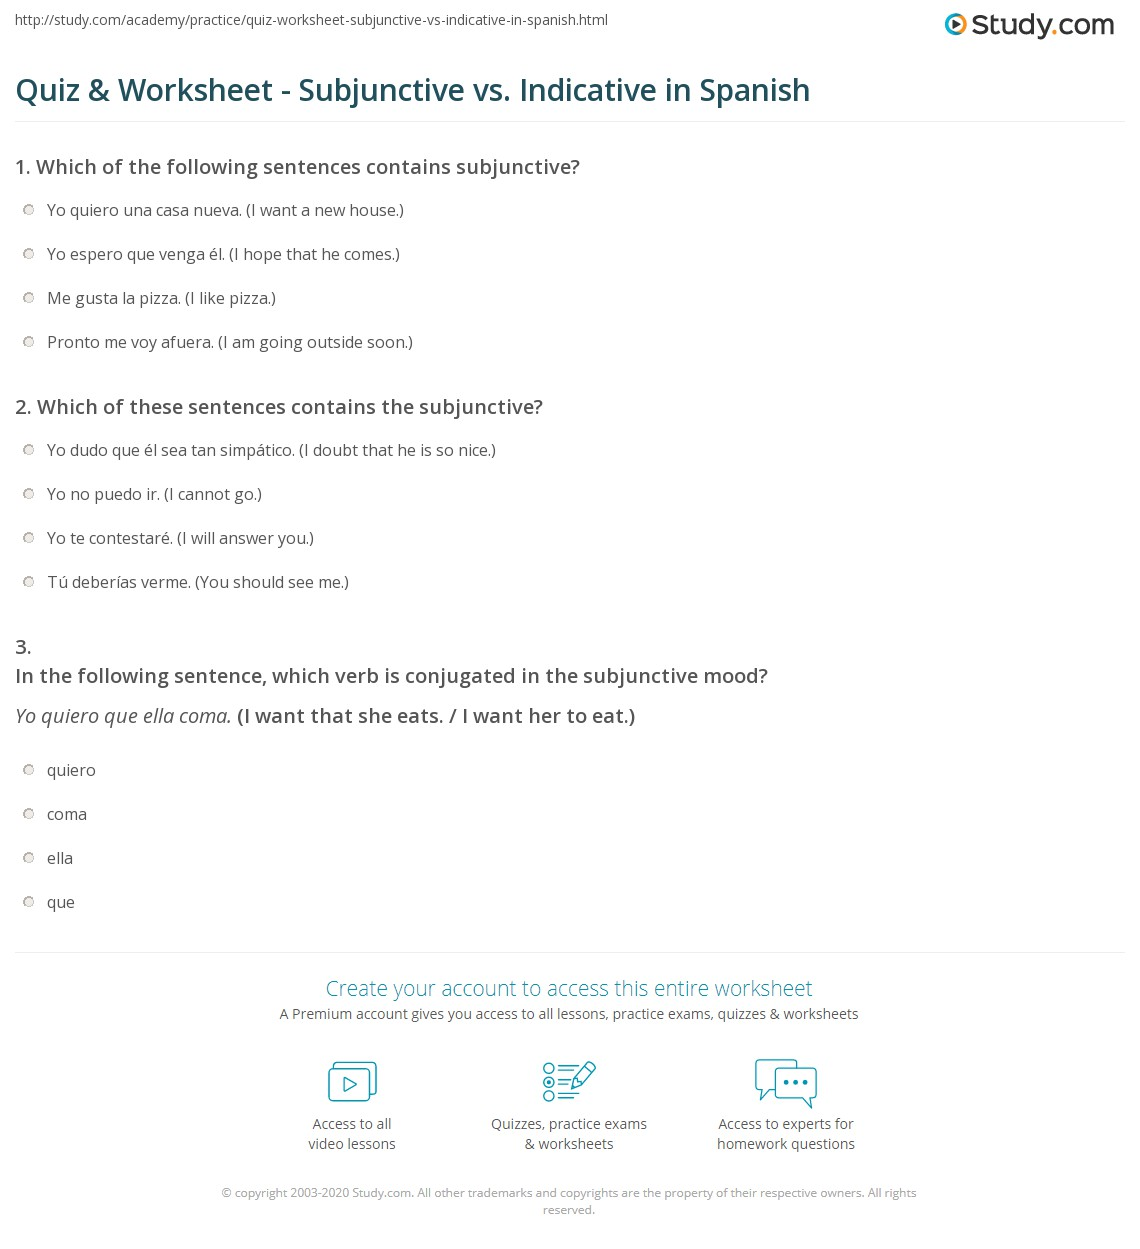 Quiz Worksheet Subjunctive Vs Indicative In Spanish Study